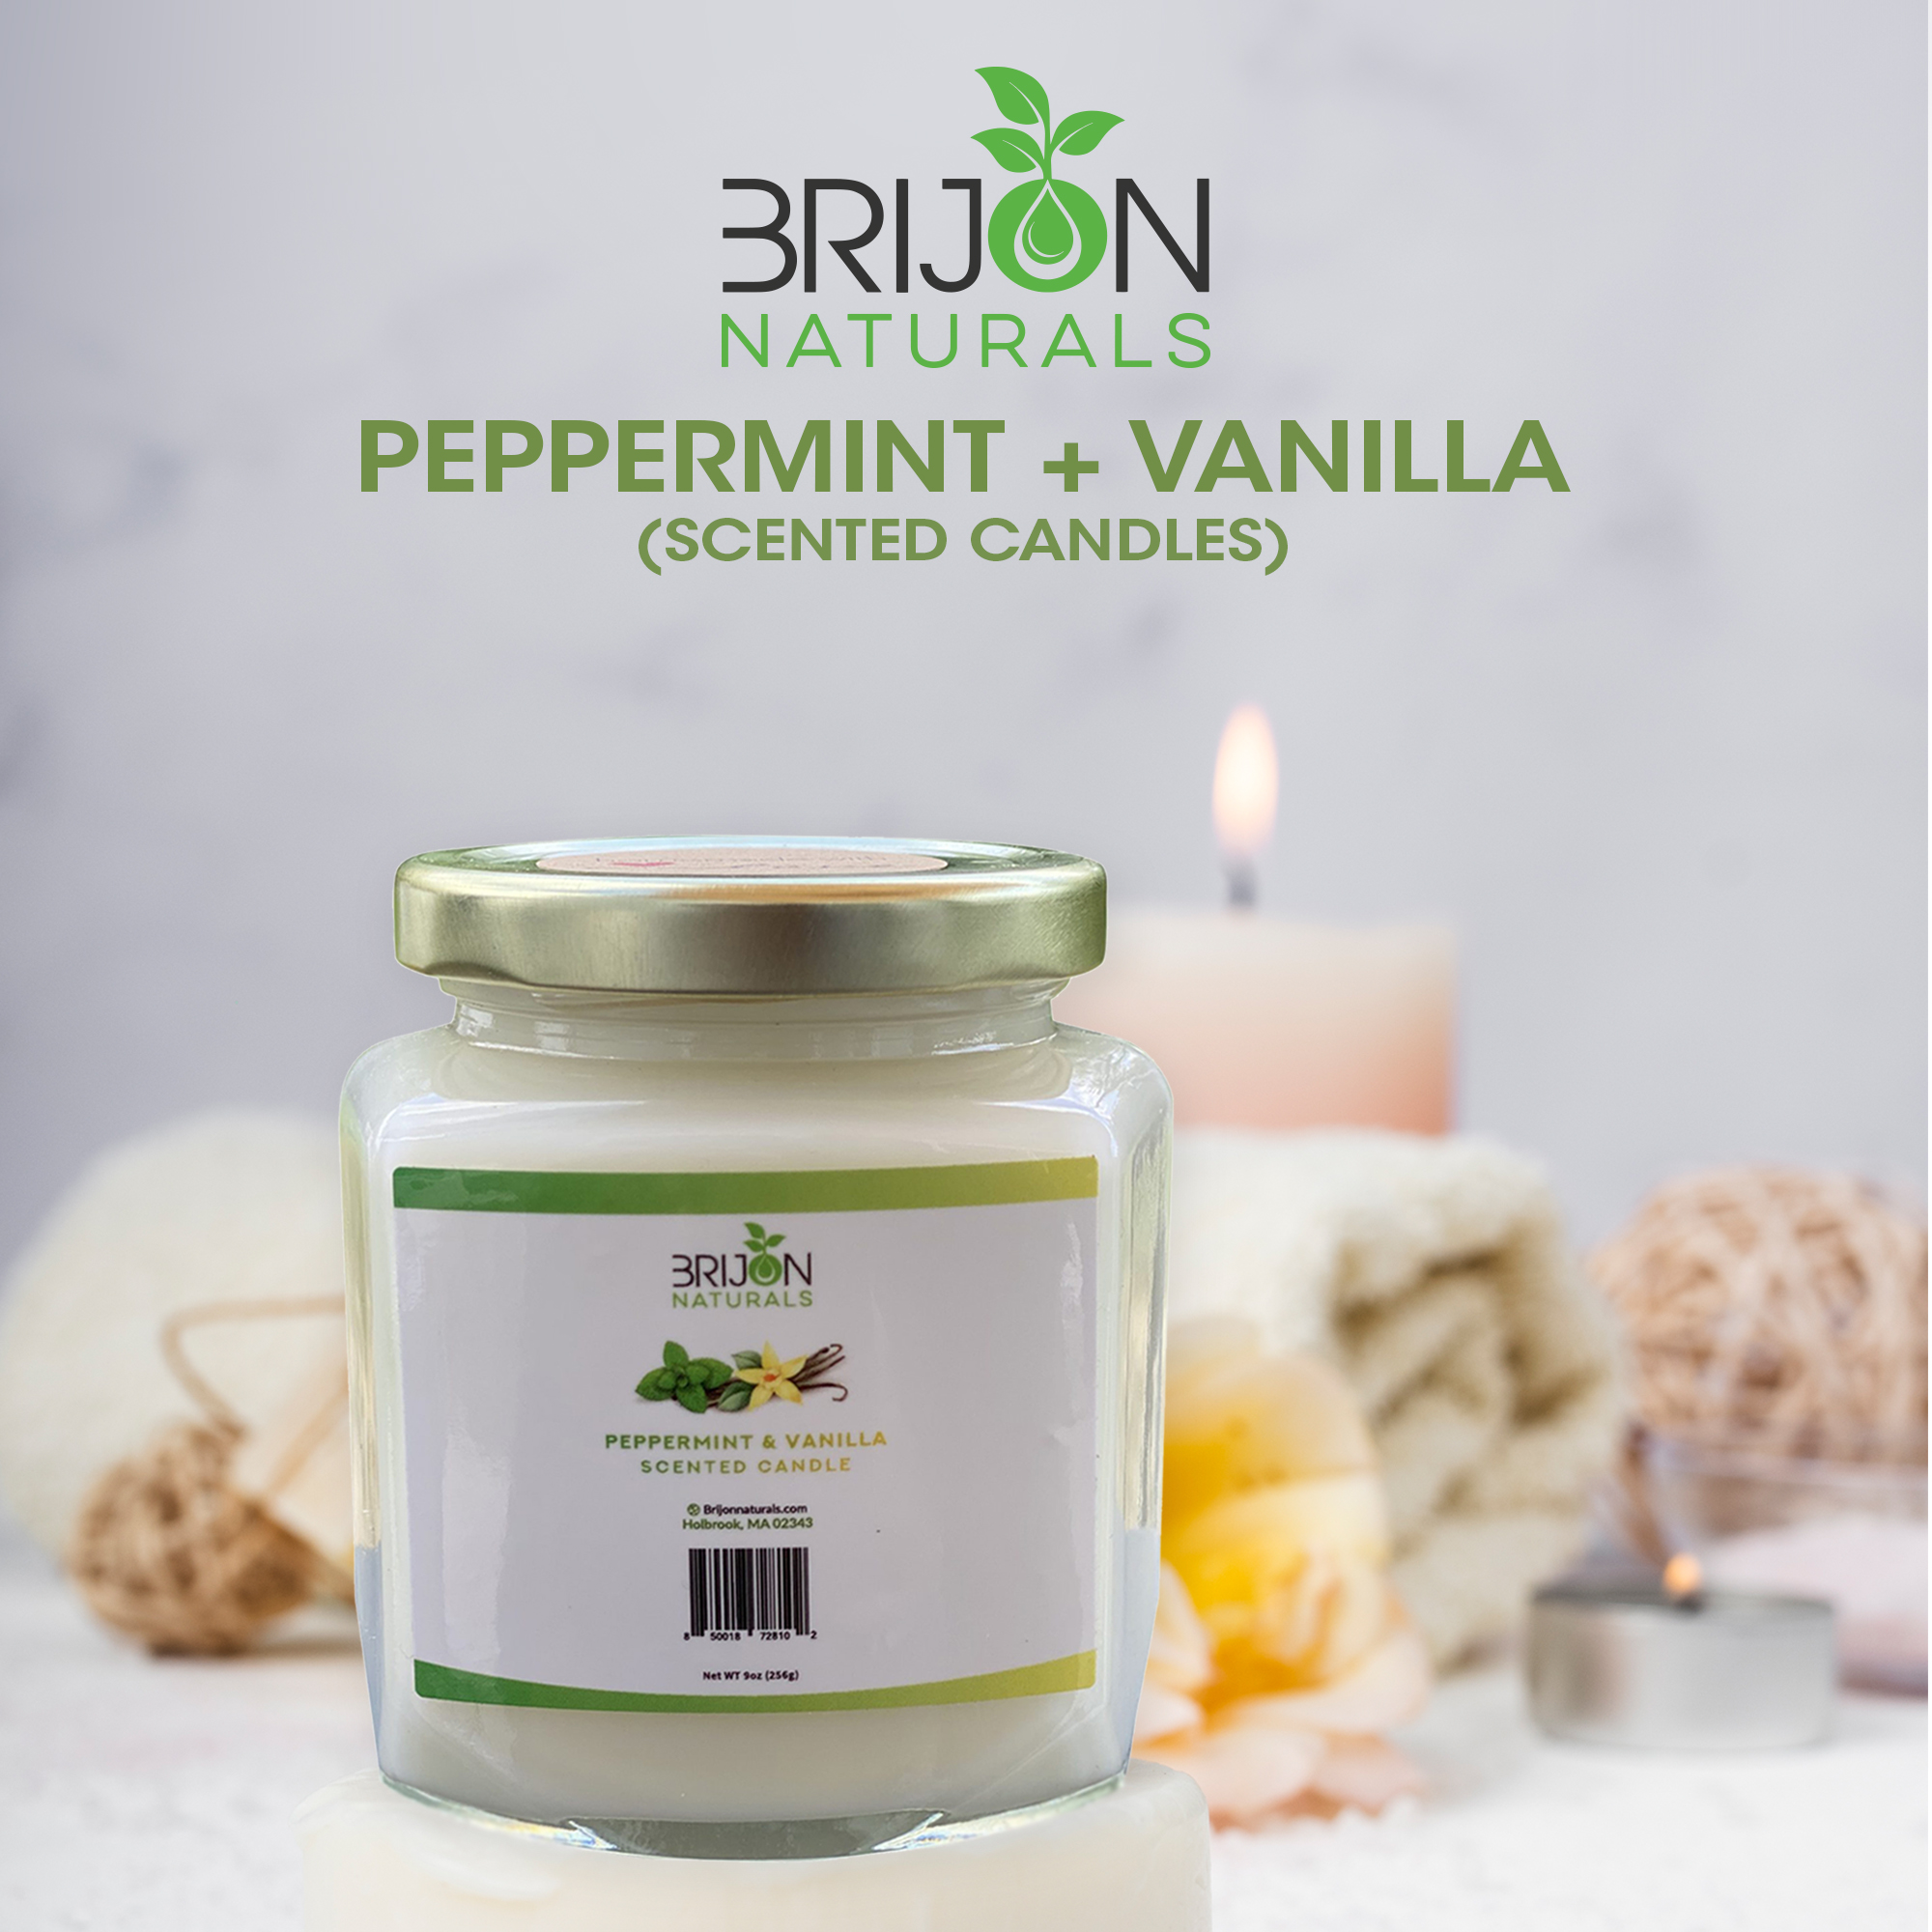 Buy Your Peppermint Vanilla Scented Candles Here Brijon Naturals